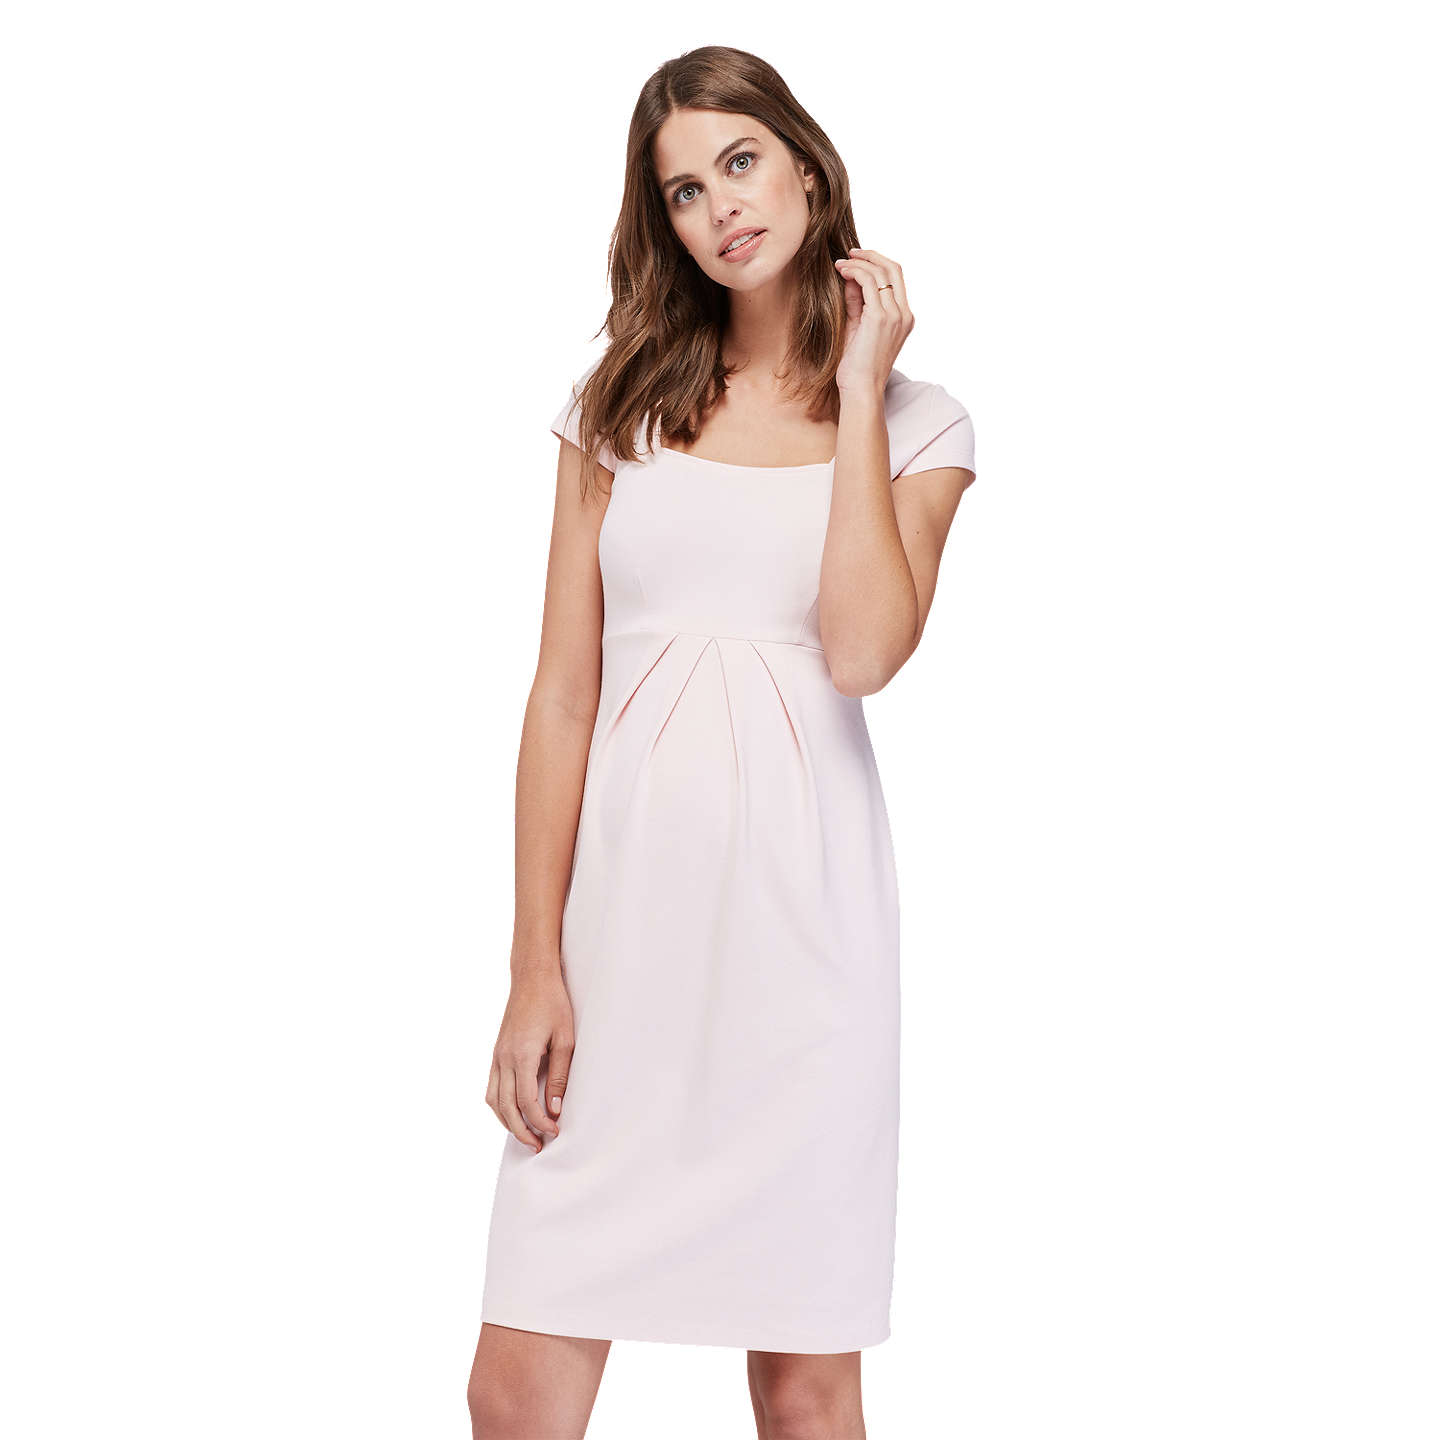 Isabella oliver farah shift maternity dress at john lewis buyisabella oliver farah shift maternity dress blush 8 online at johnlewis ombrellifo Image collections